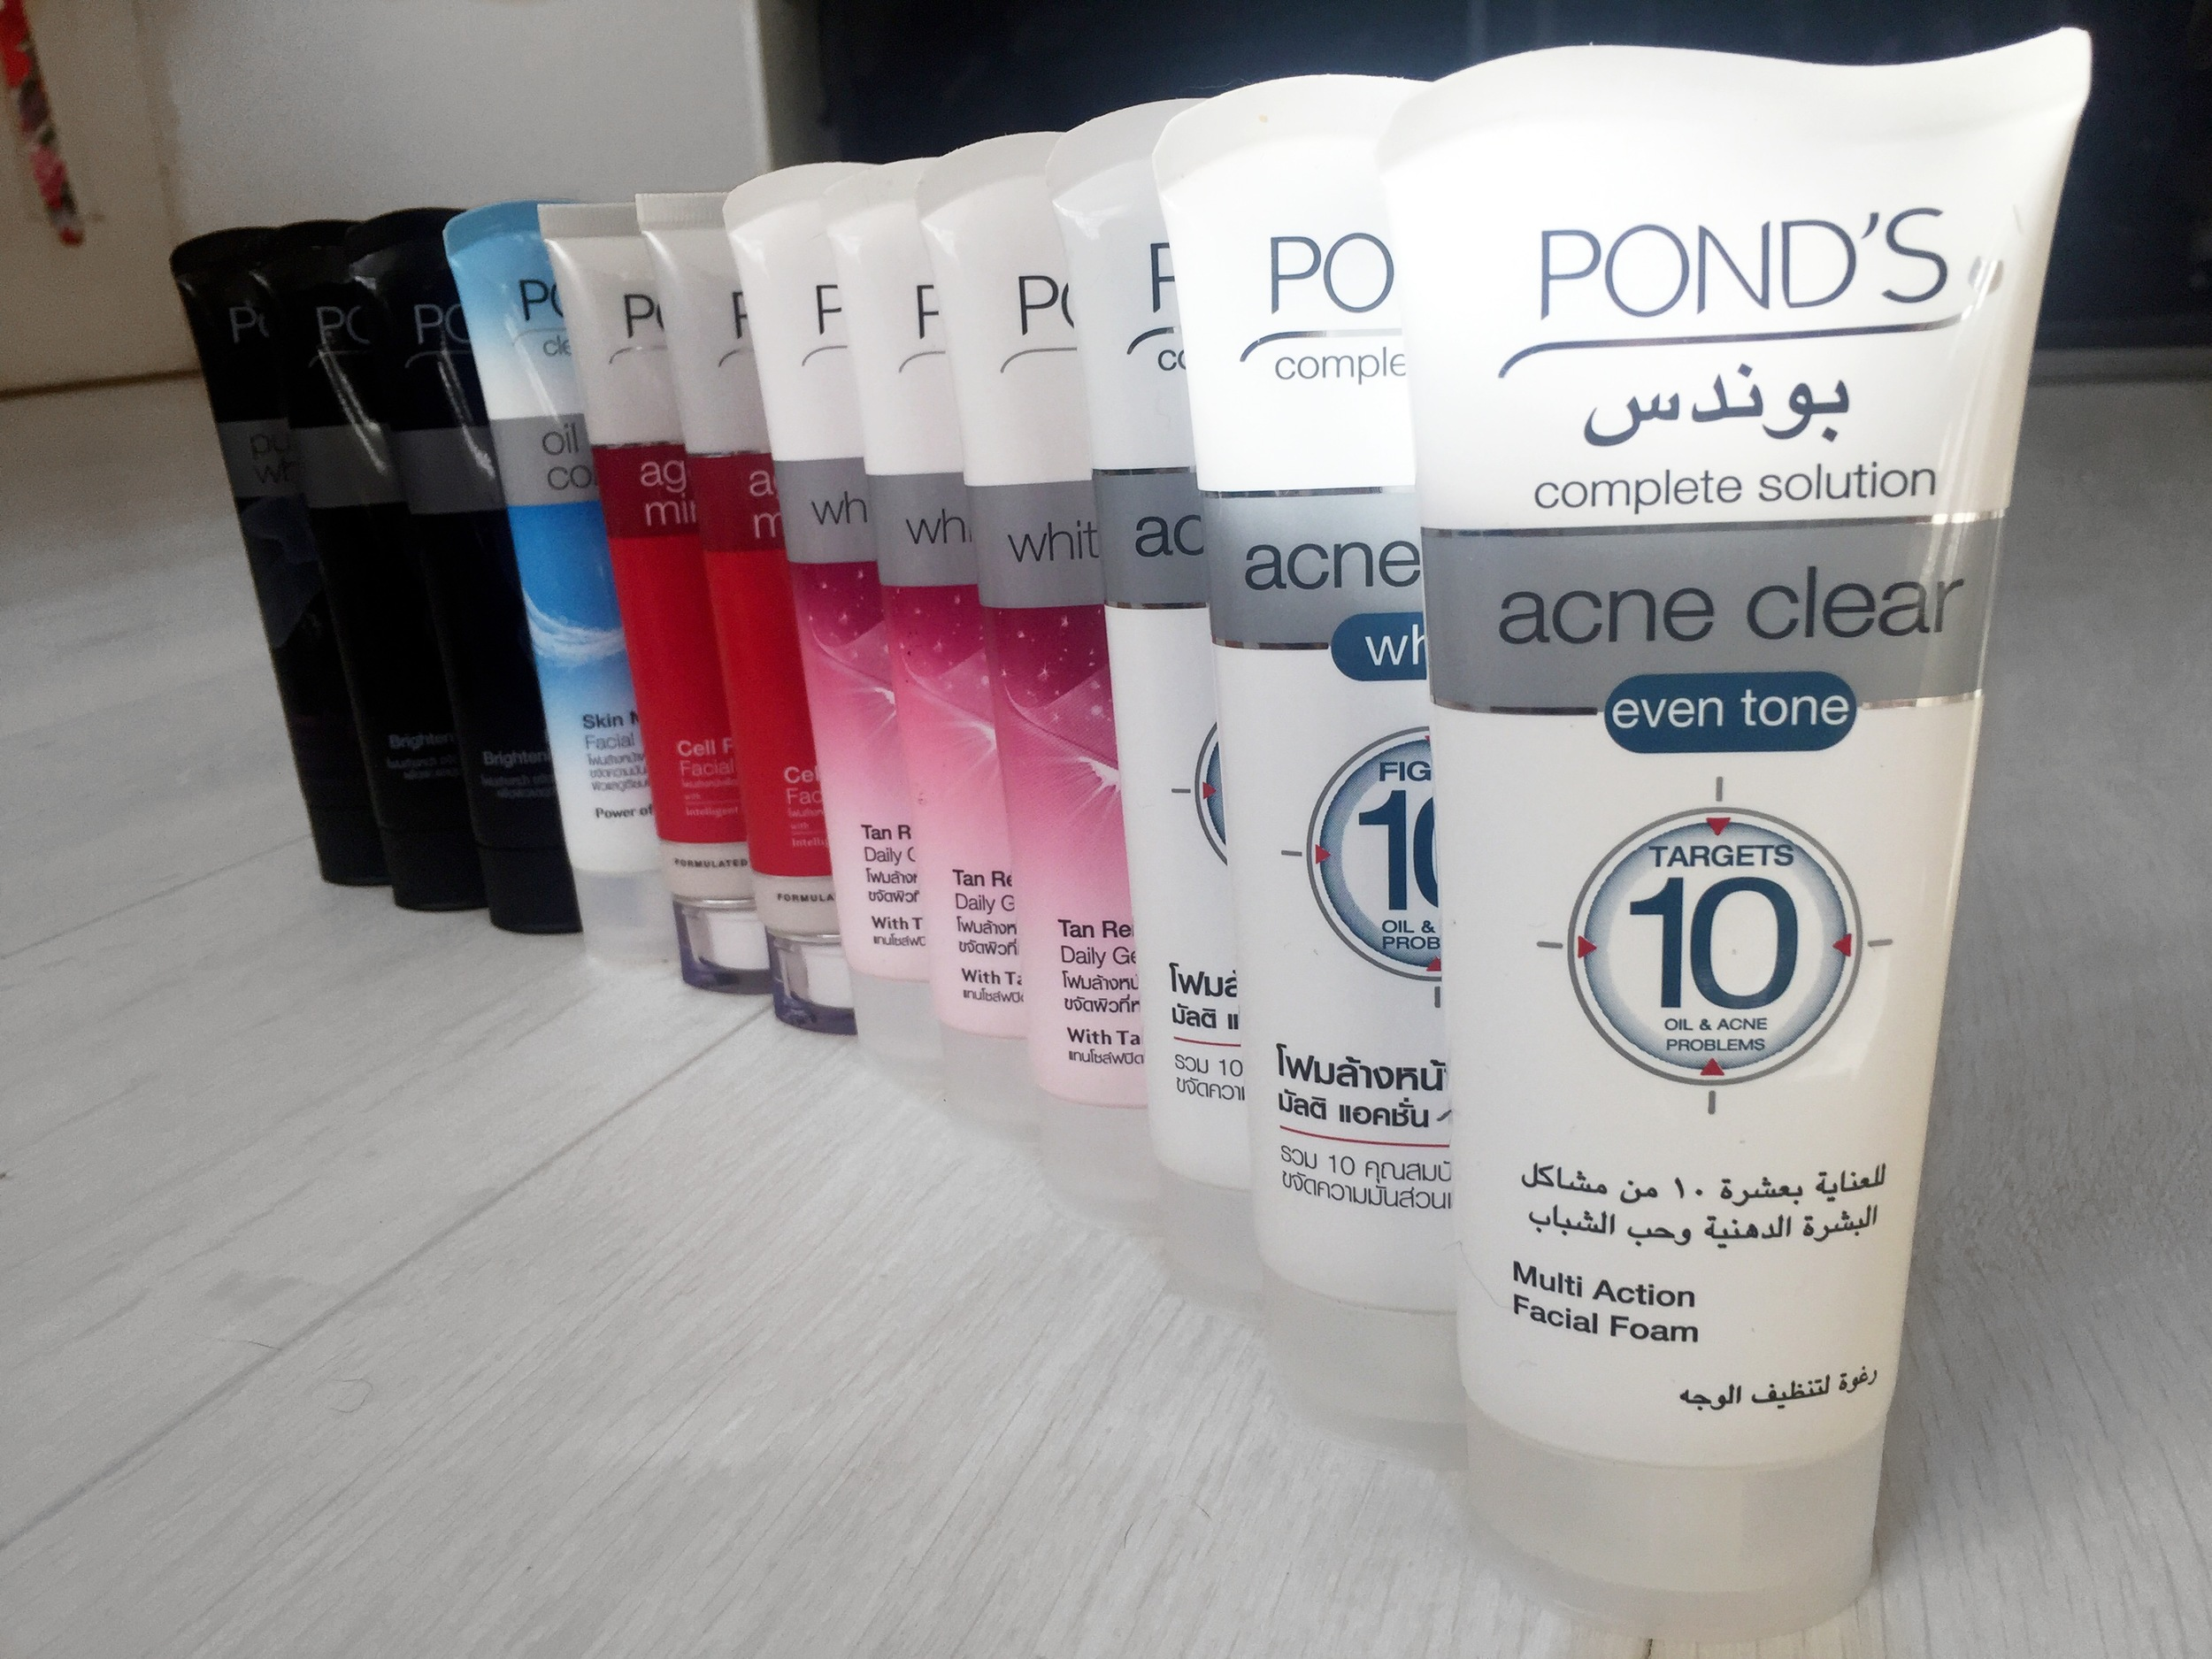 From Acne Clearing to Anti ageing, Ponds has it all. And yes, I sort of binged when I saw that they stocked it in Dubai.